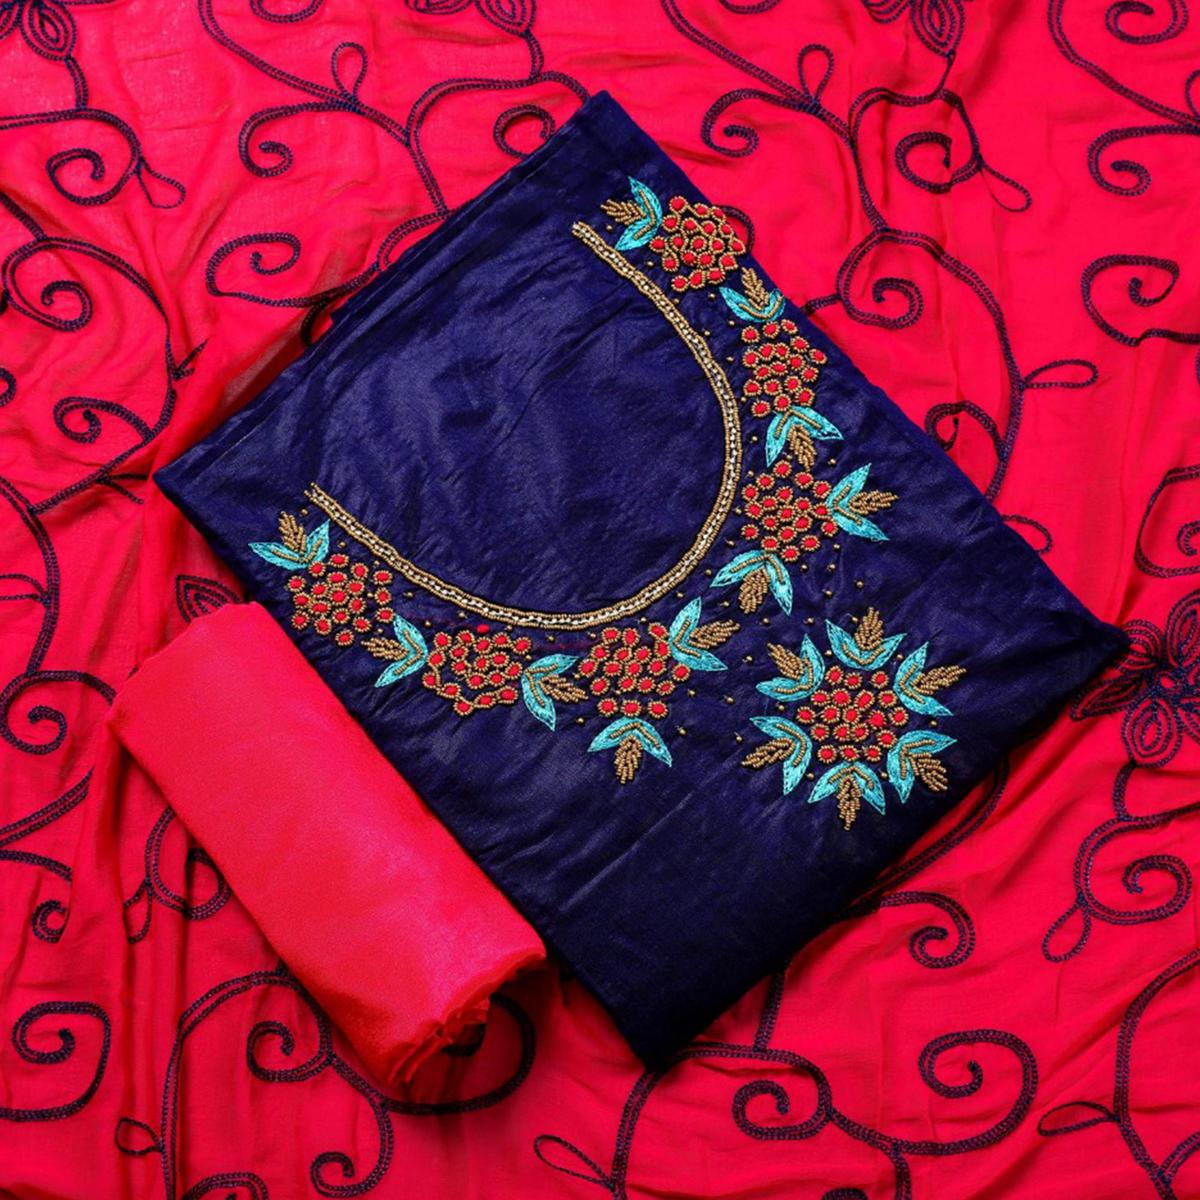 Starring Navy Blue Colored Party Wear Embroidered Semi Modal Salwar Suit